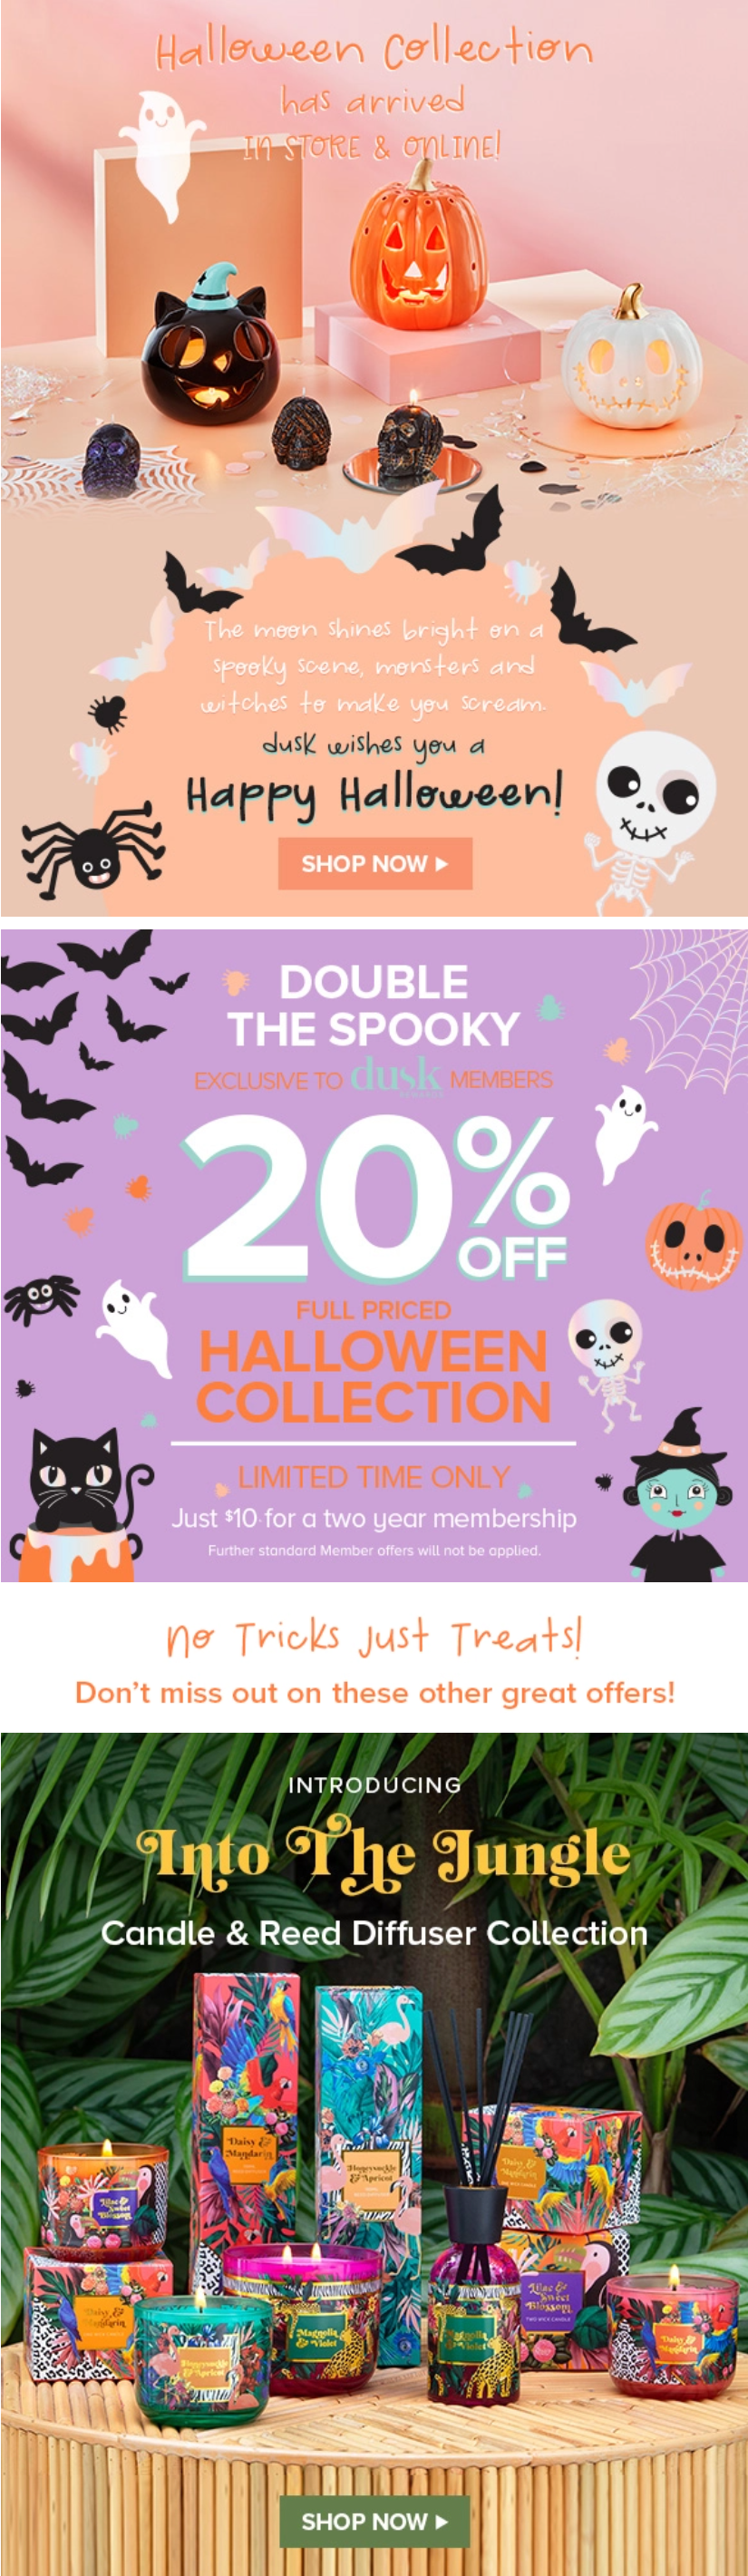 Halloween collection has arrived in store and online